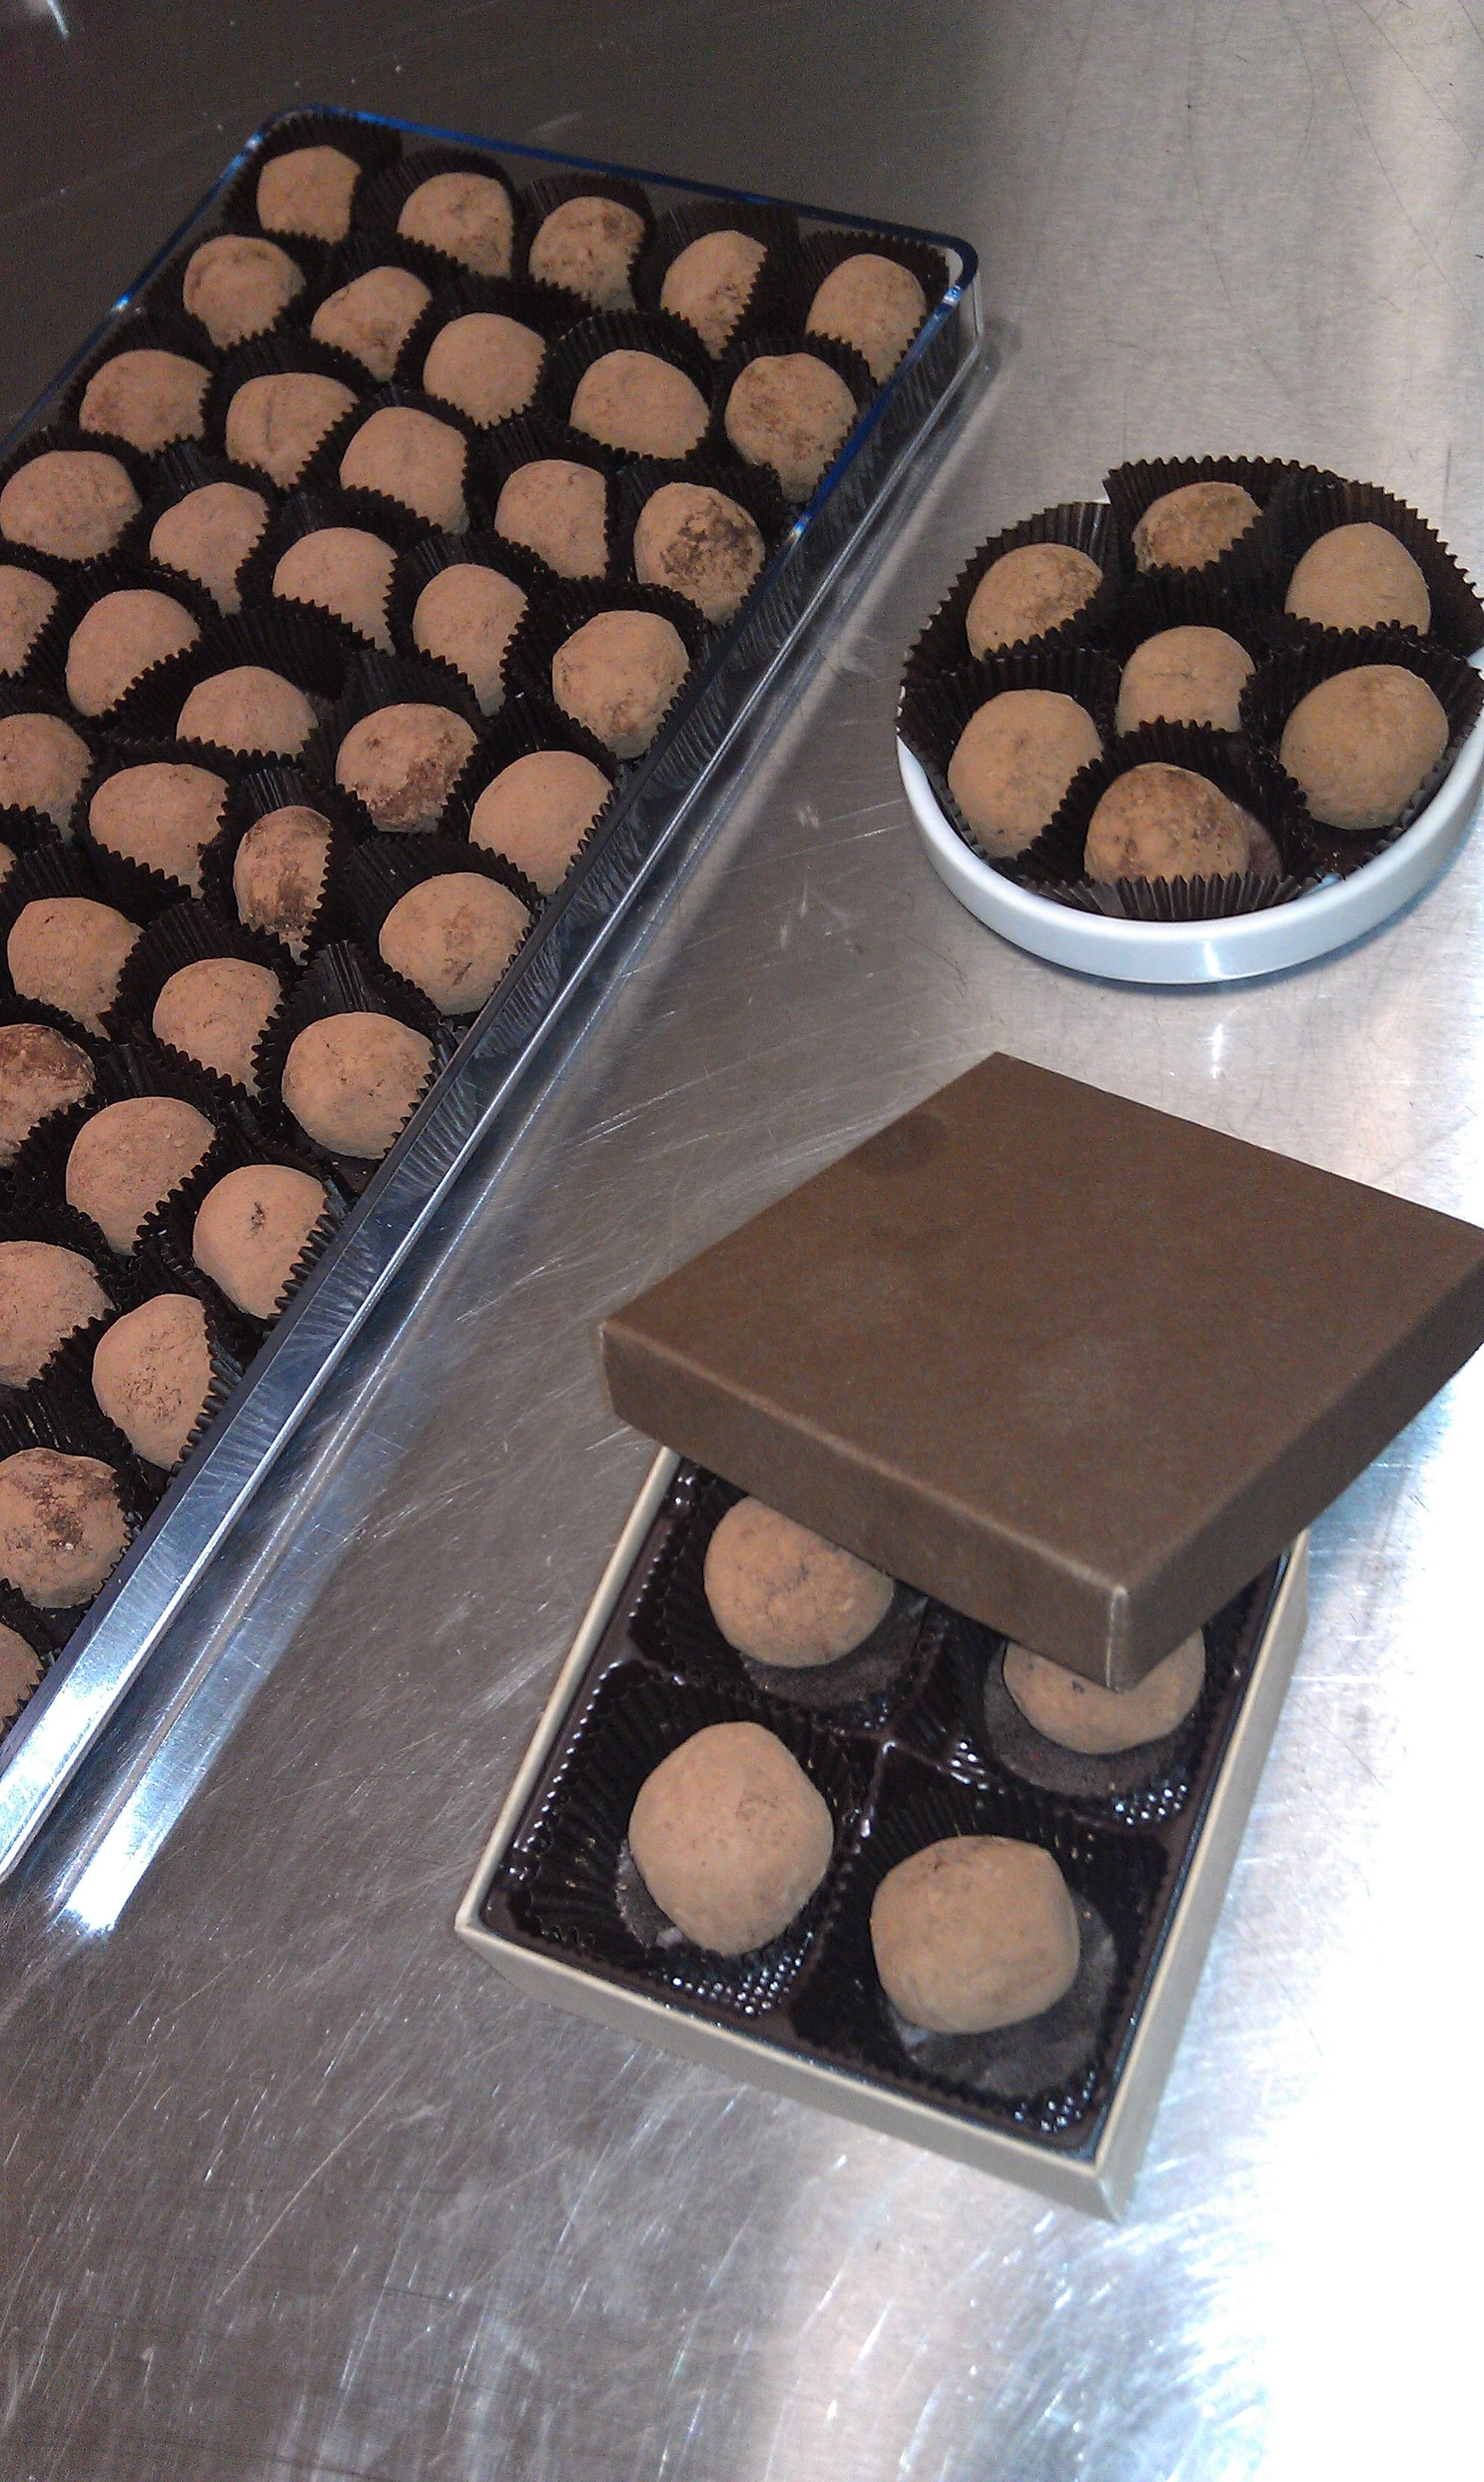 Classic milk chocolate truffles dusted in cocoa powder